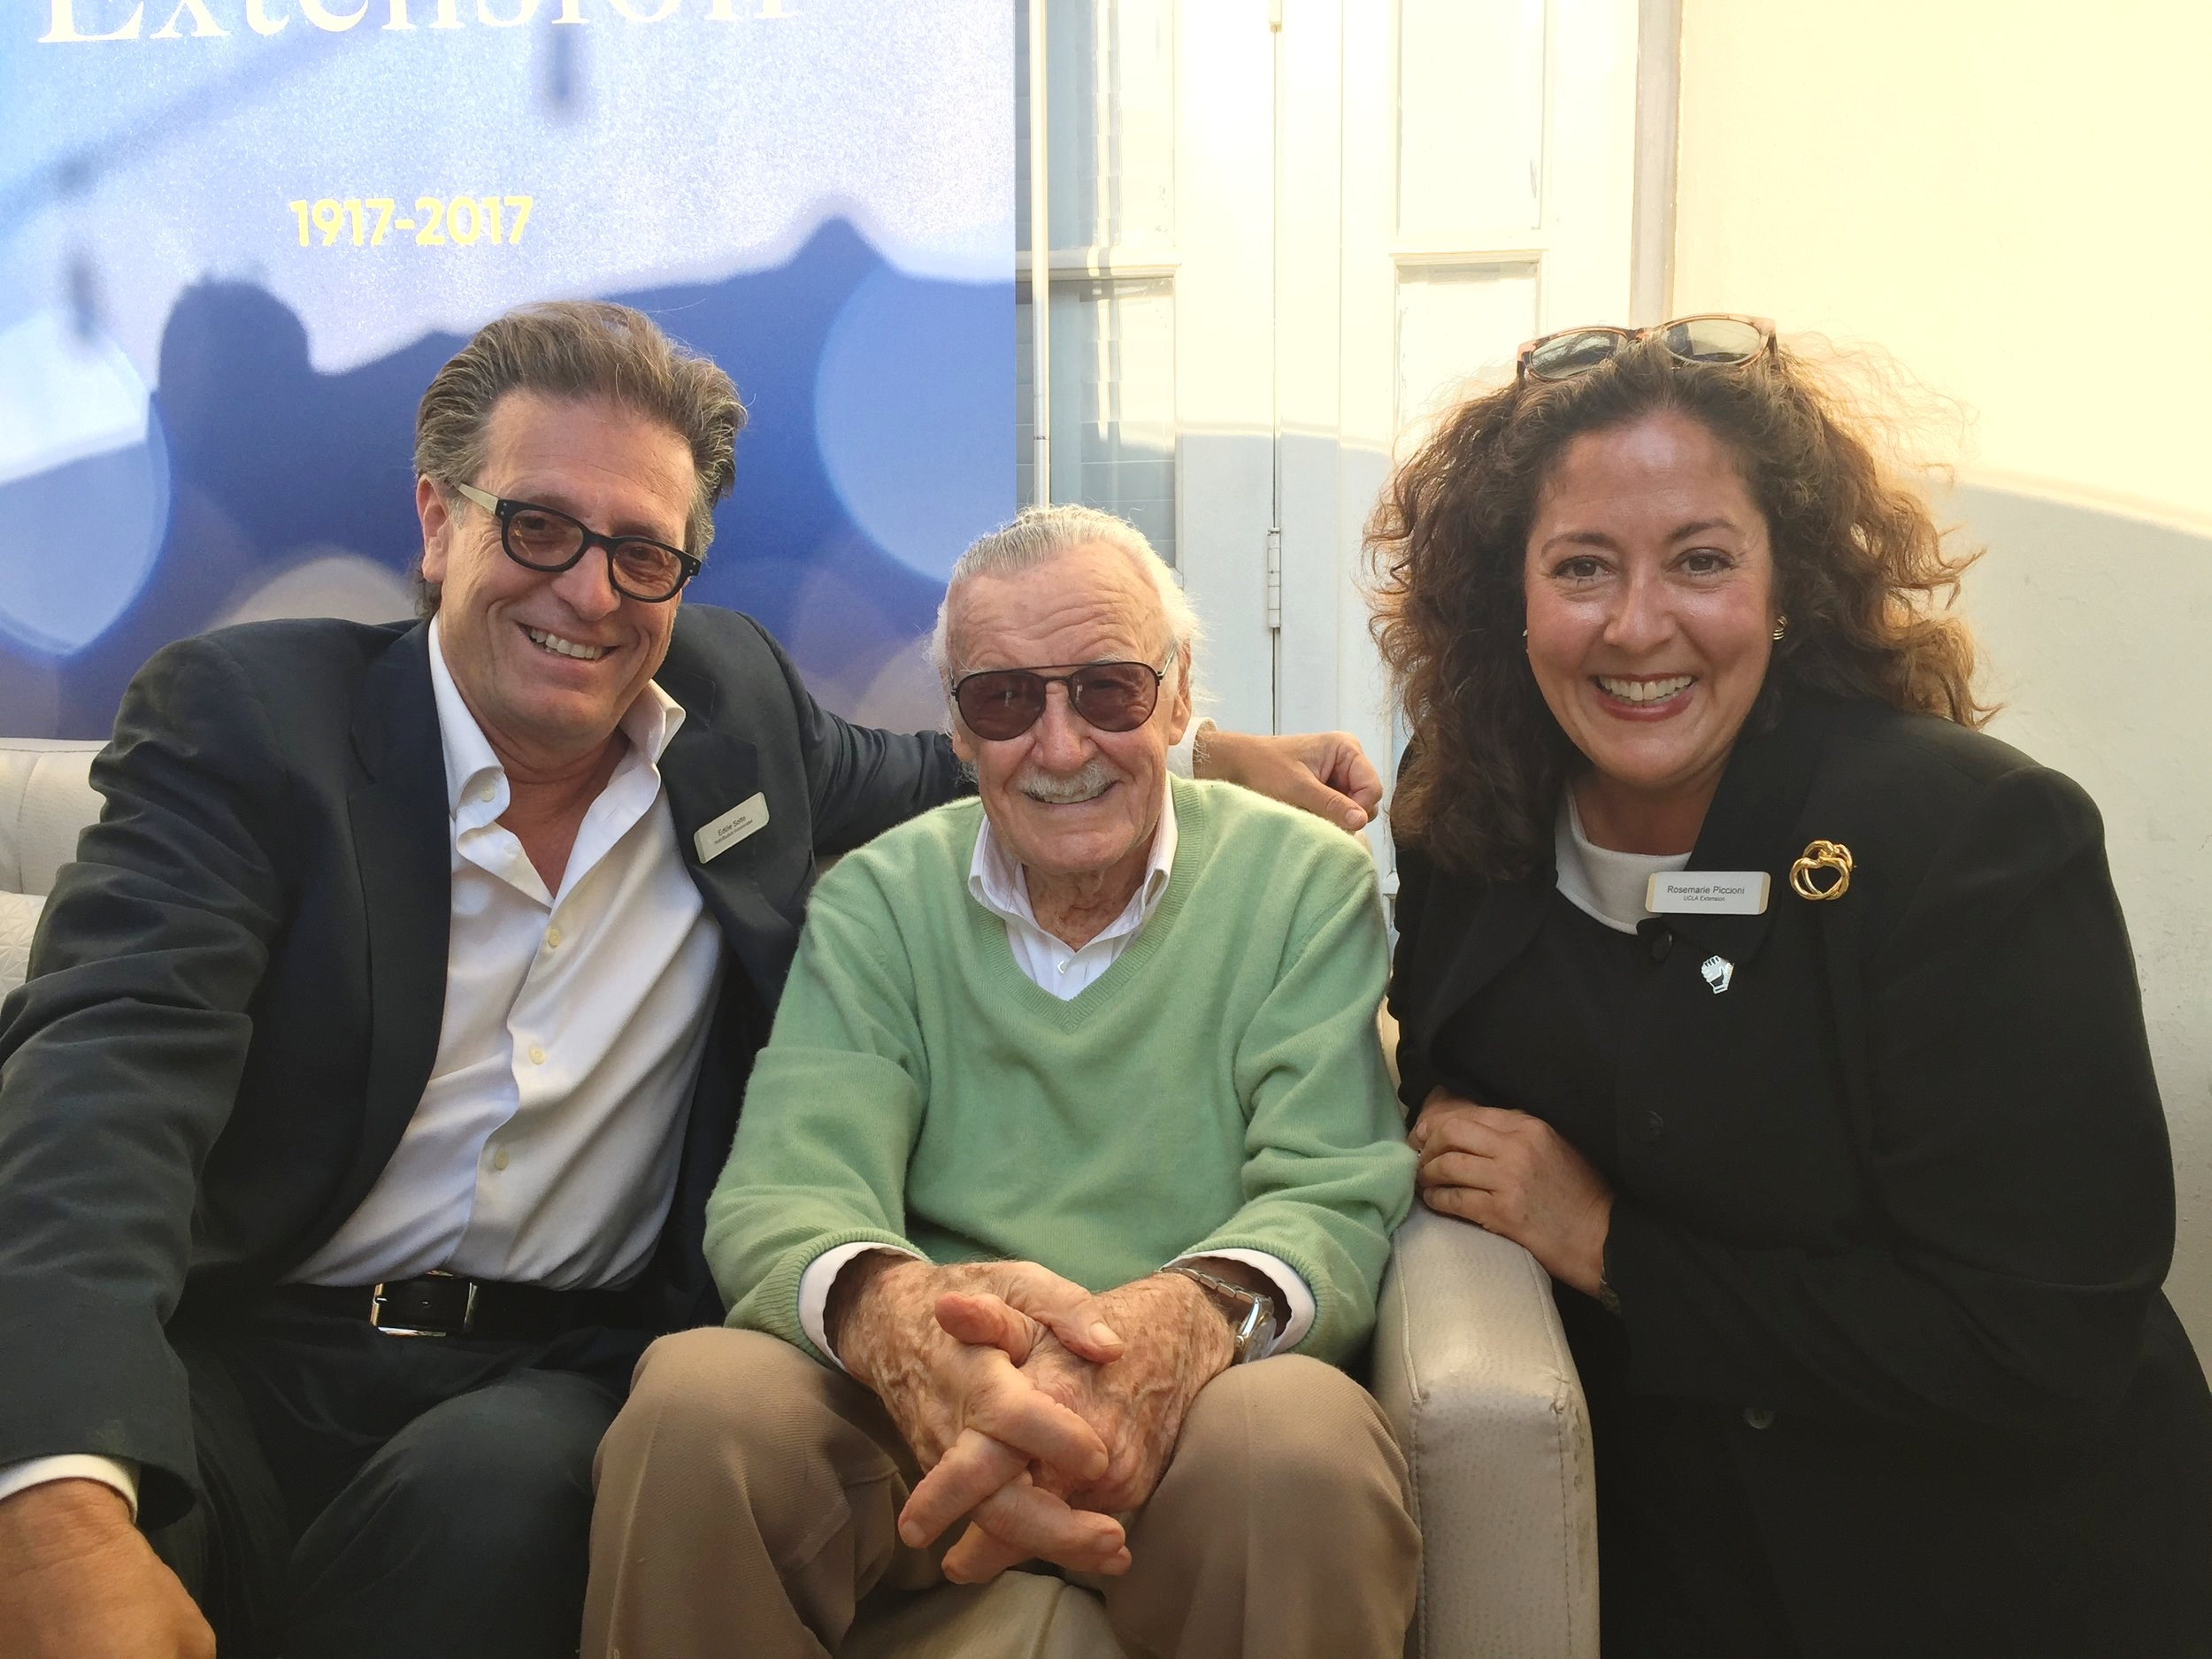 Eddie Sotto, Stan Lee, and Rosemarie Piccioni.